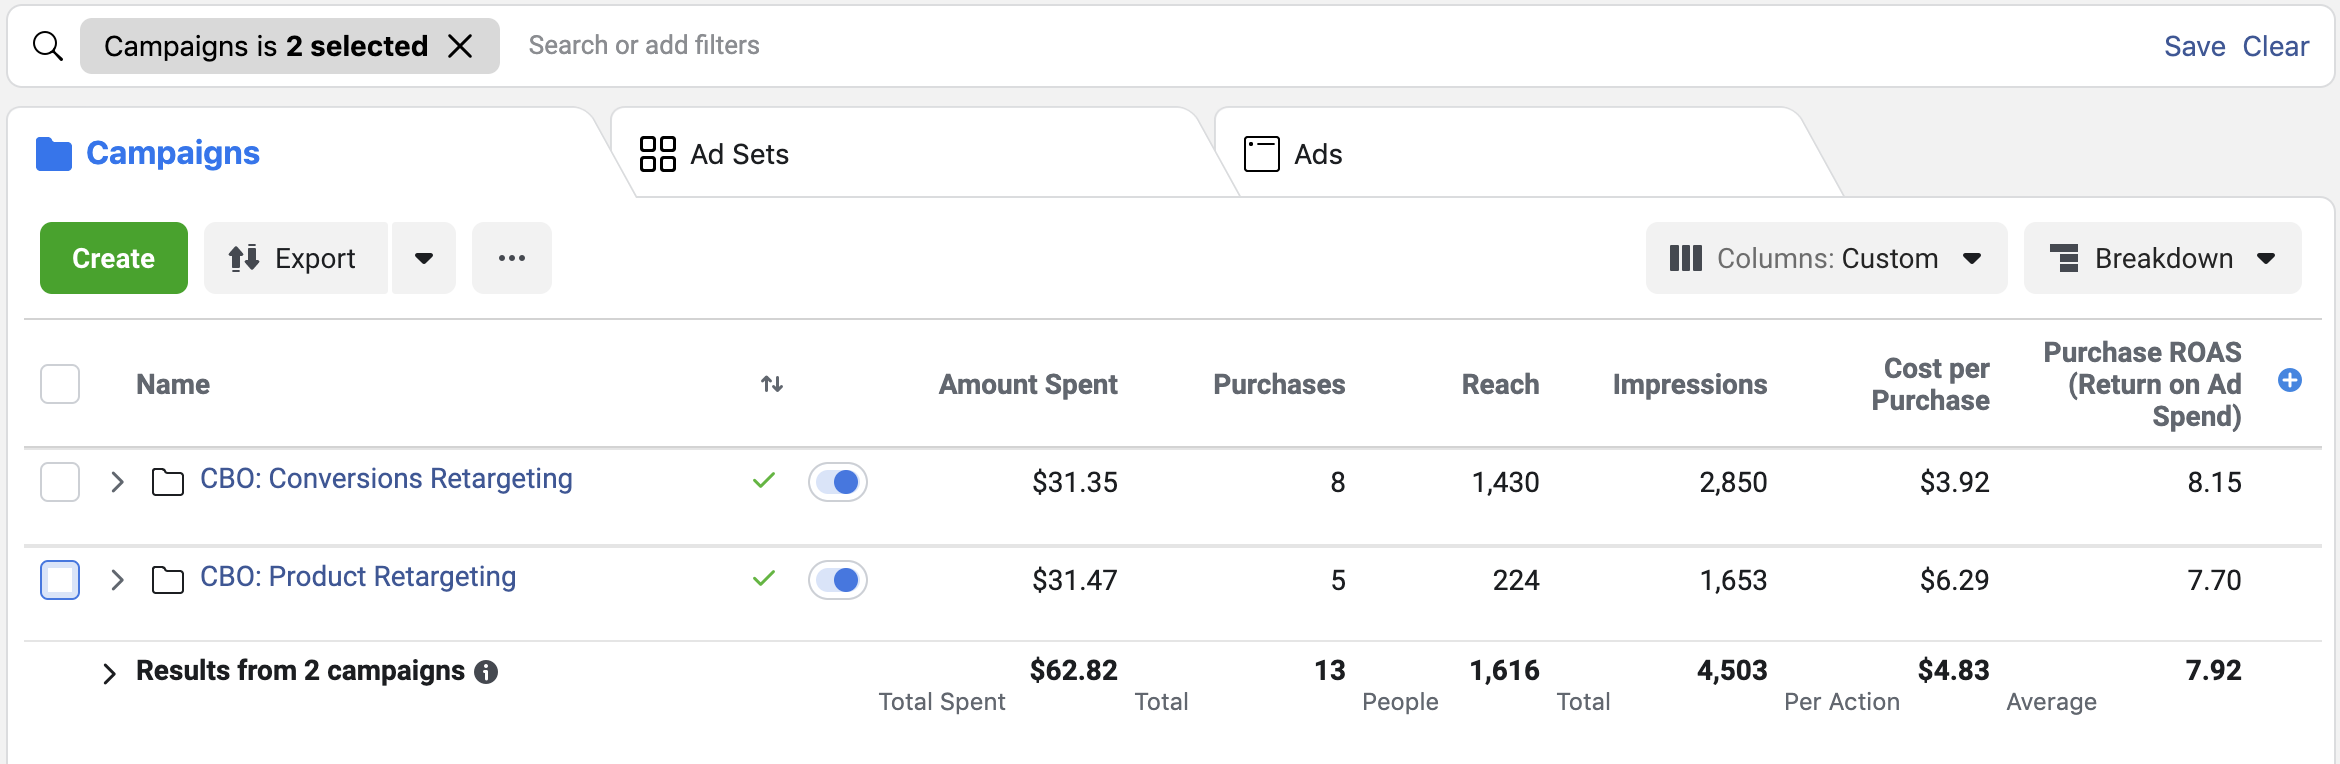 eCommerce campaign budget optimization strategy (CBO) for Facebook Ads